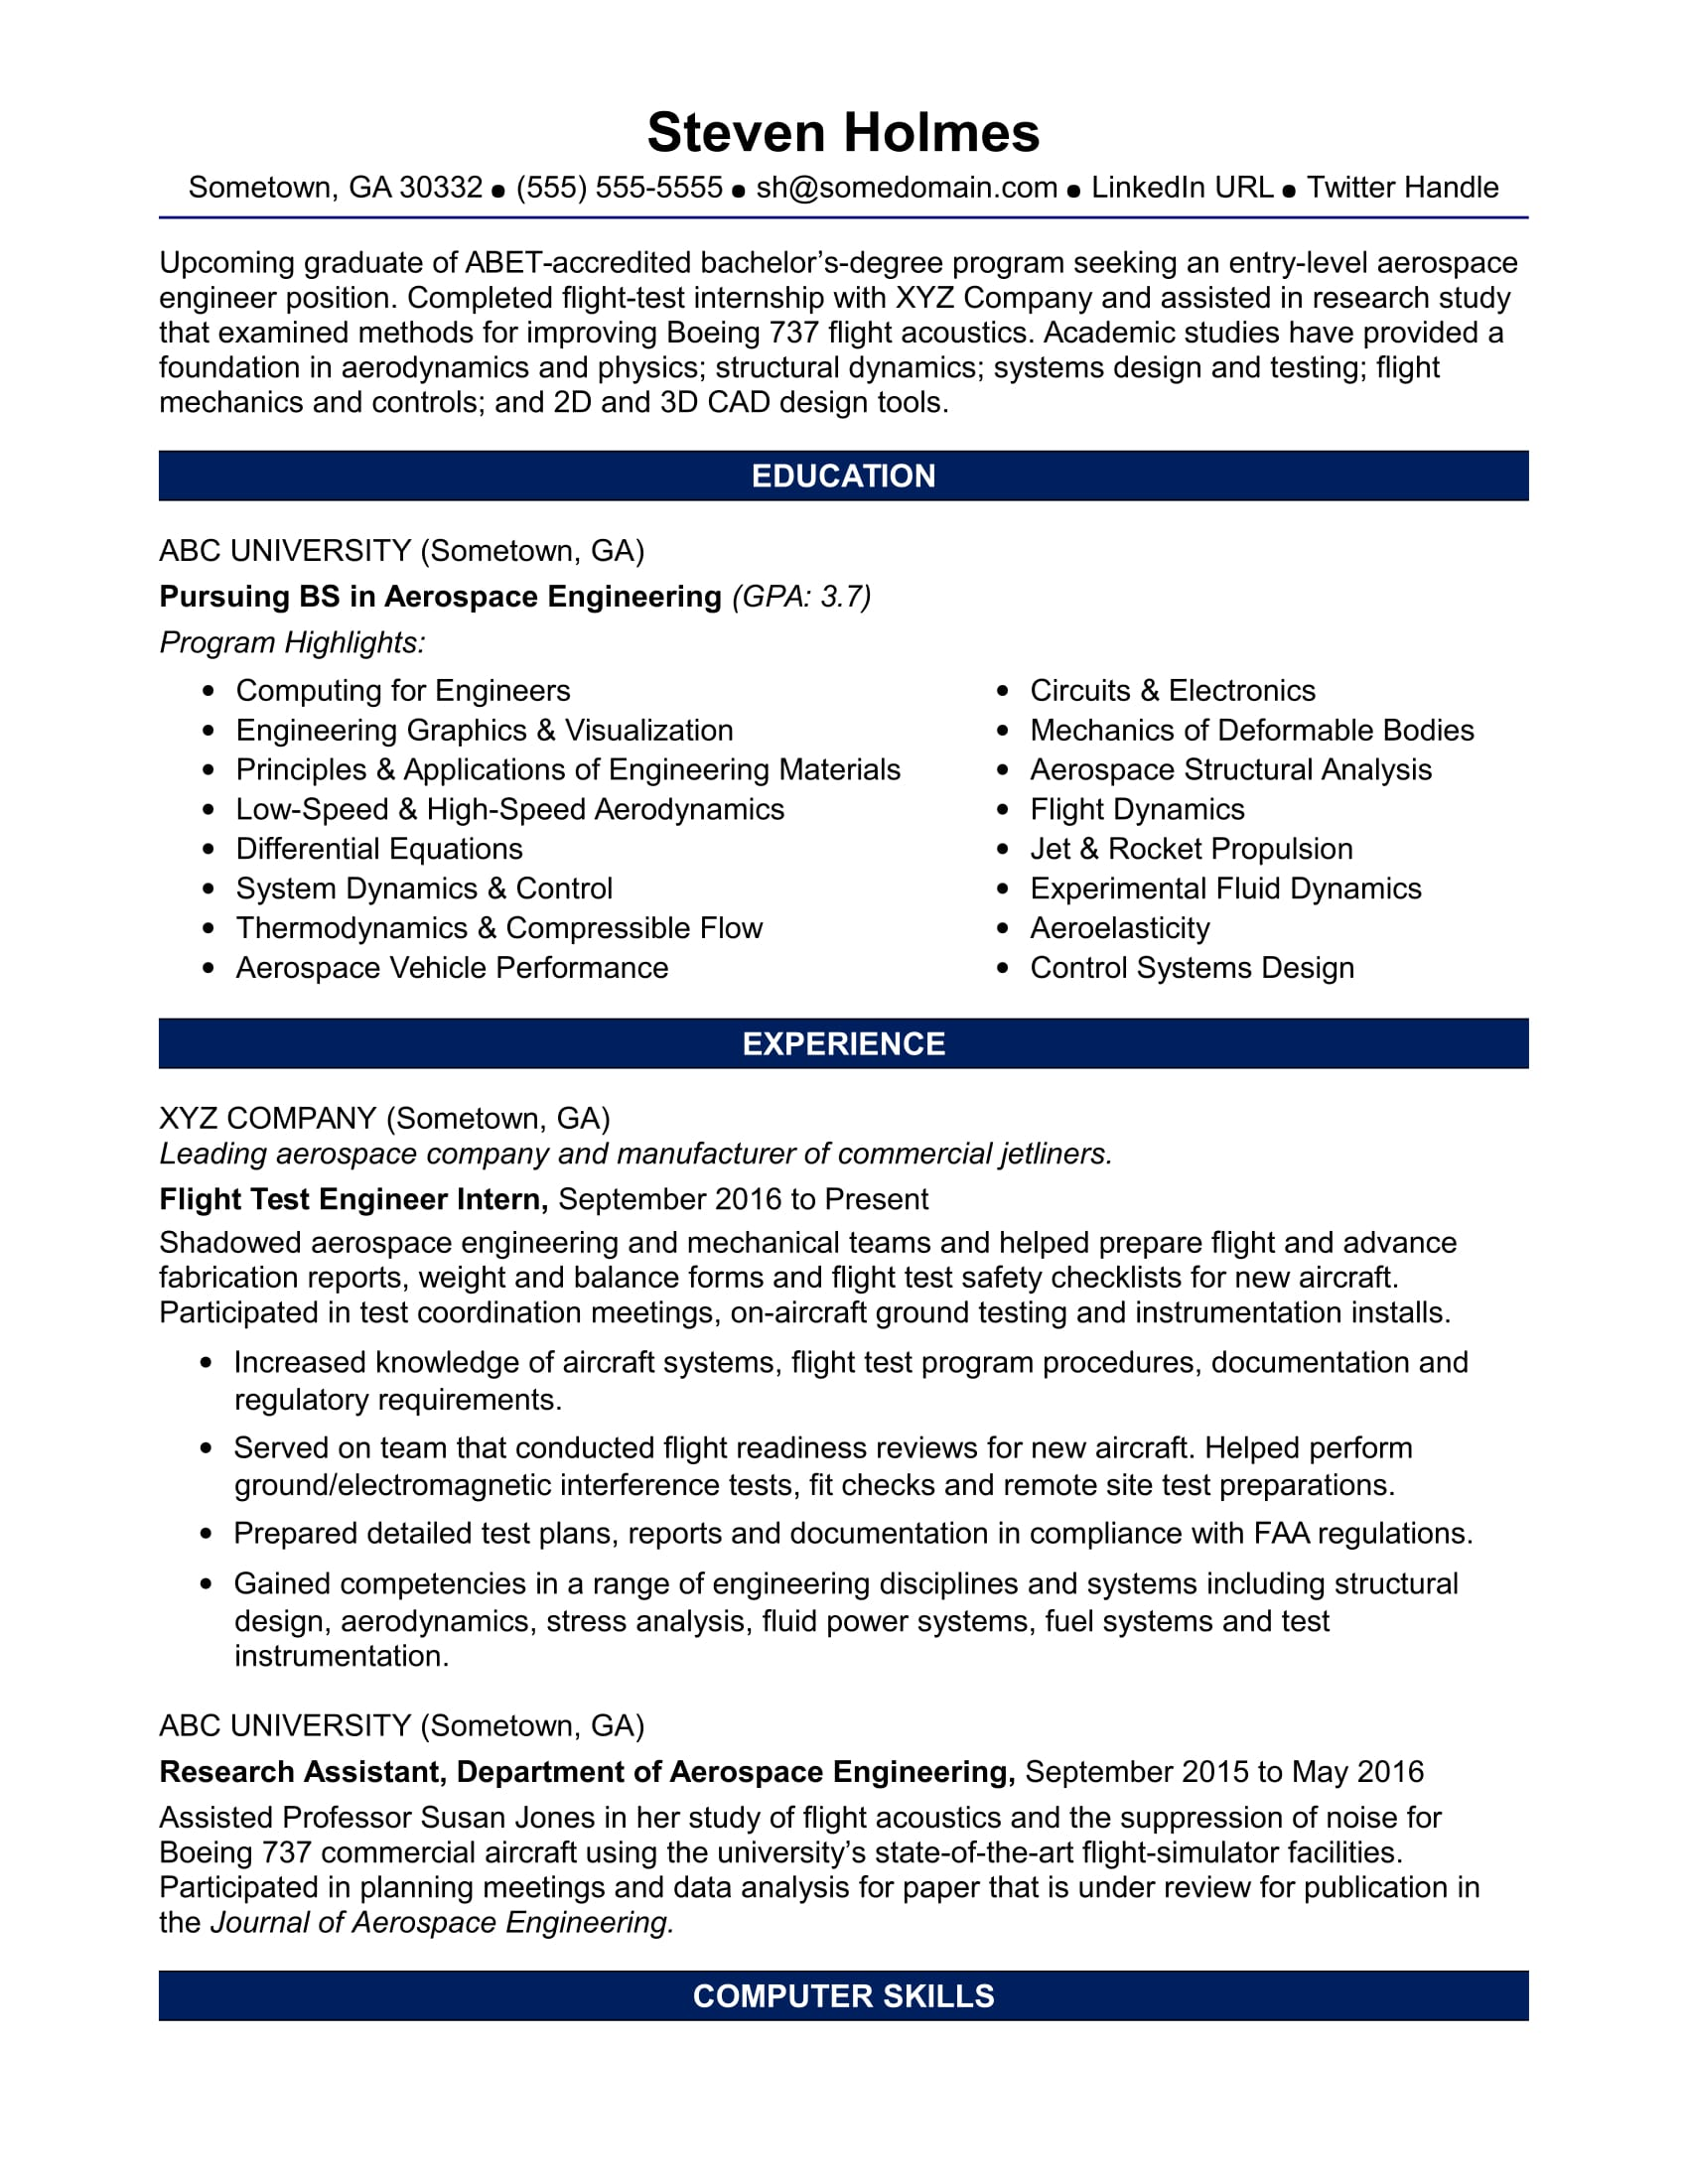 sample resume for an entry level aerospace engineer - Sample Resume For Aeronautical Engineering Fresher